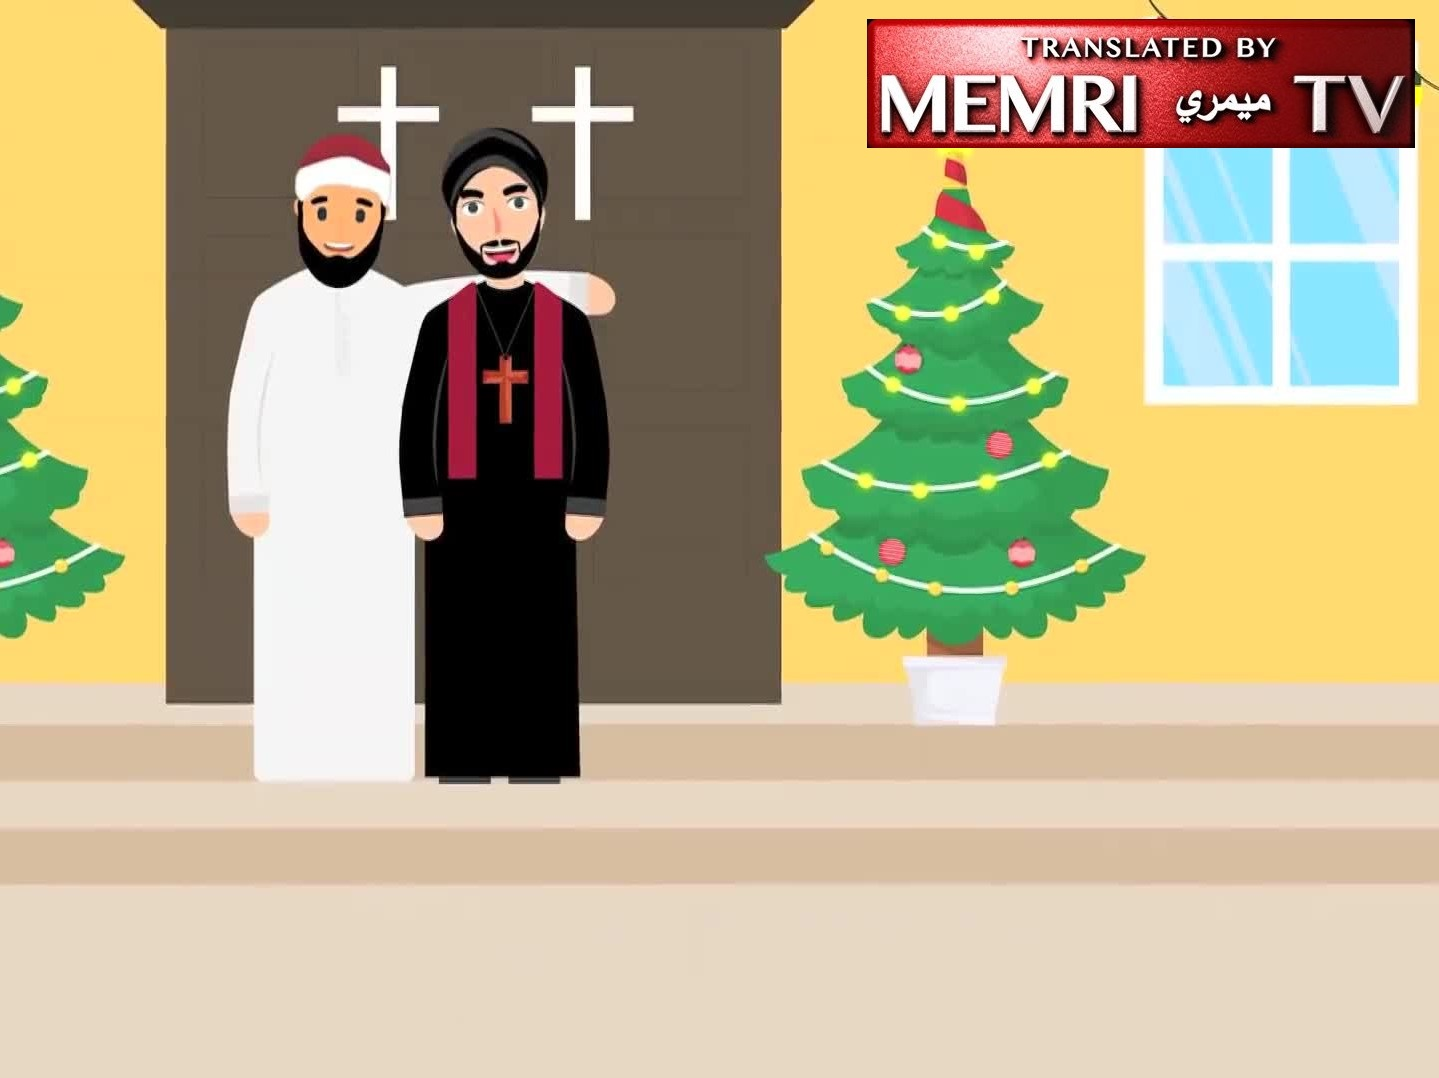 Egyptian Animated Video Encourages Muslims to Extend Christmas Greetings